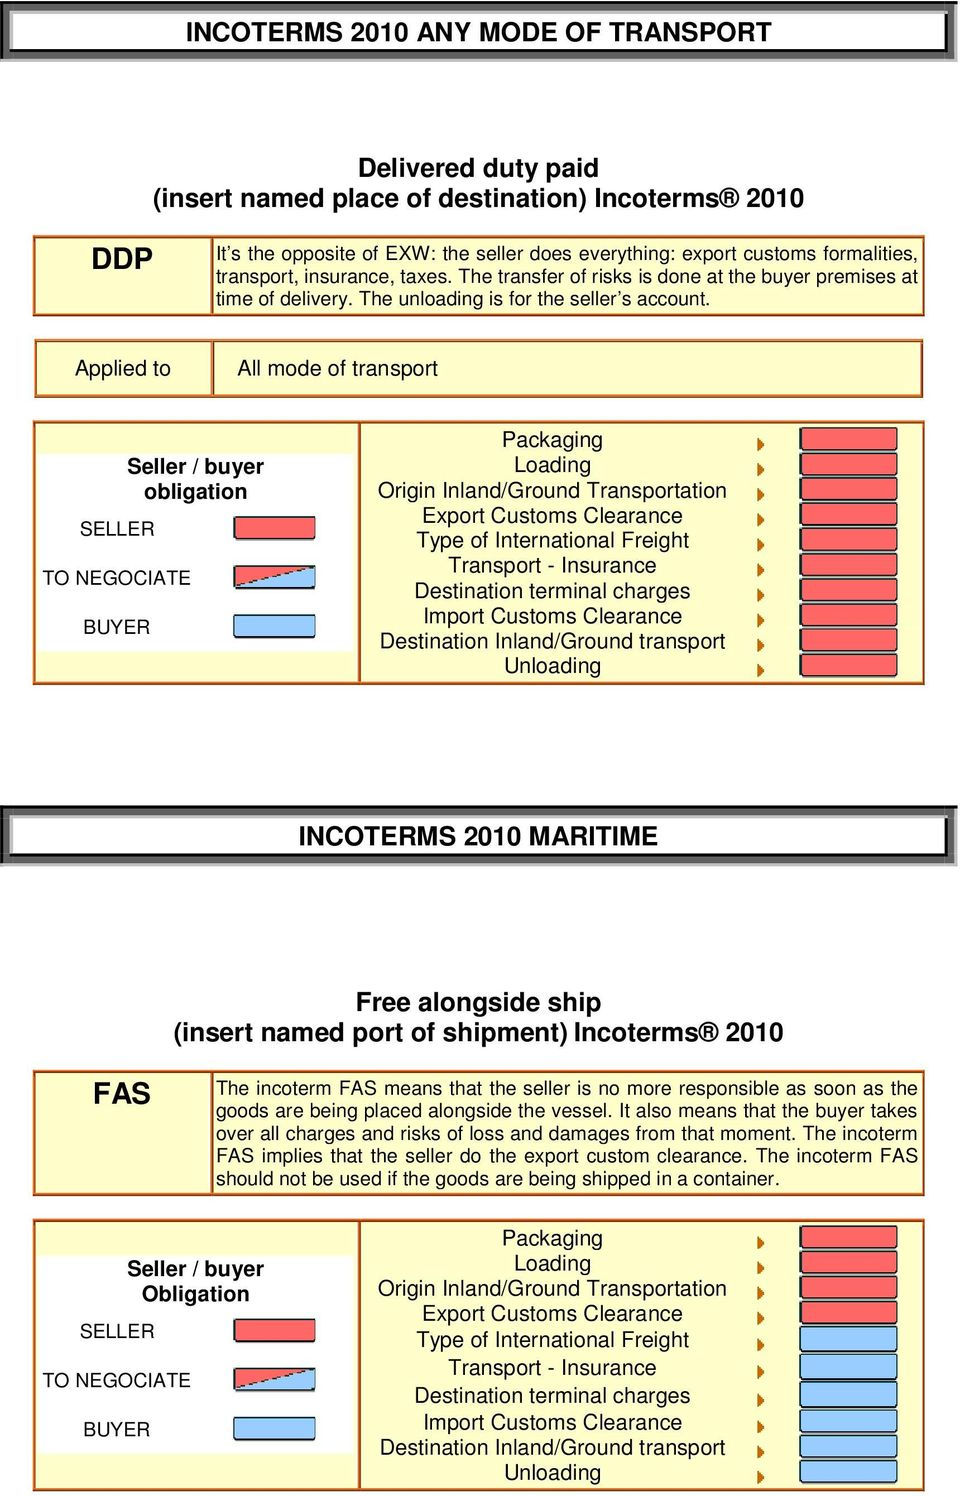 INCOTERMS 2010 MARITIME Free alongside ship (insert named port of shipment) Incoterms 2010 FAS The incoterm FAS means that the seller is no more responsible as soon as the goods